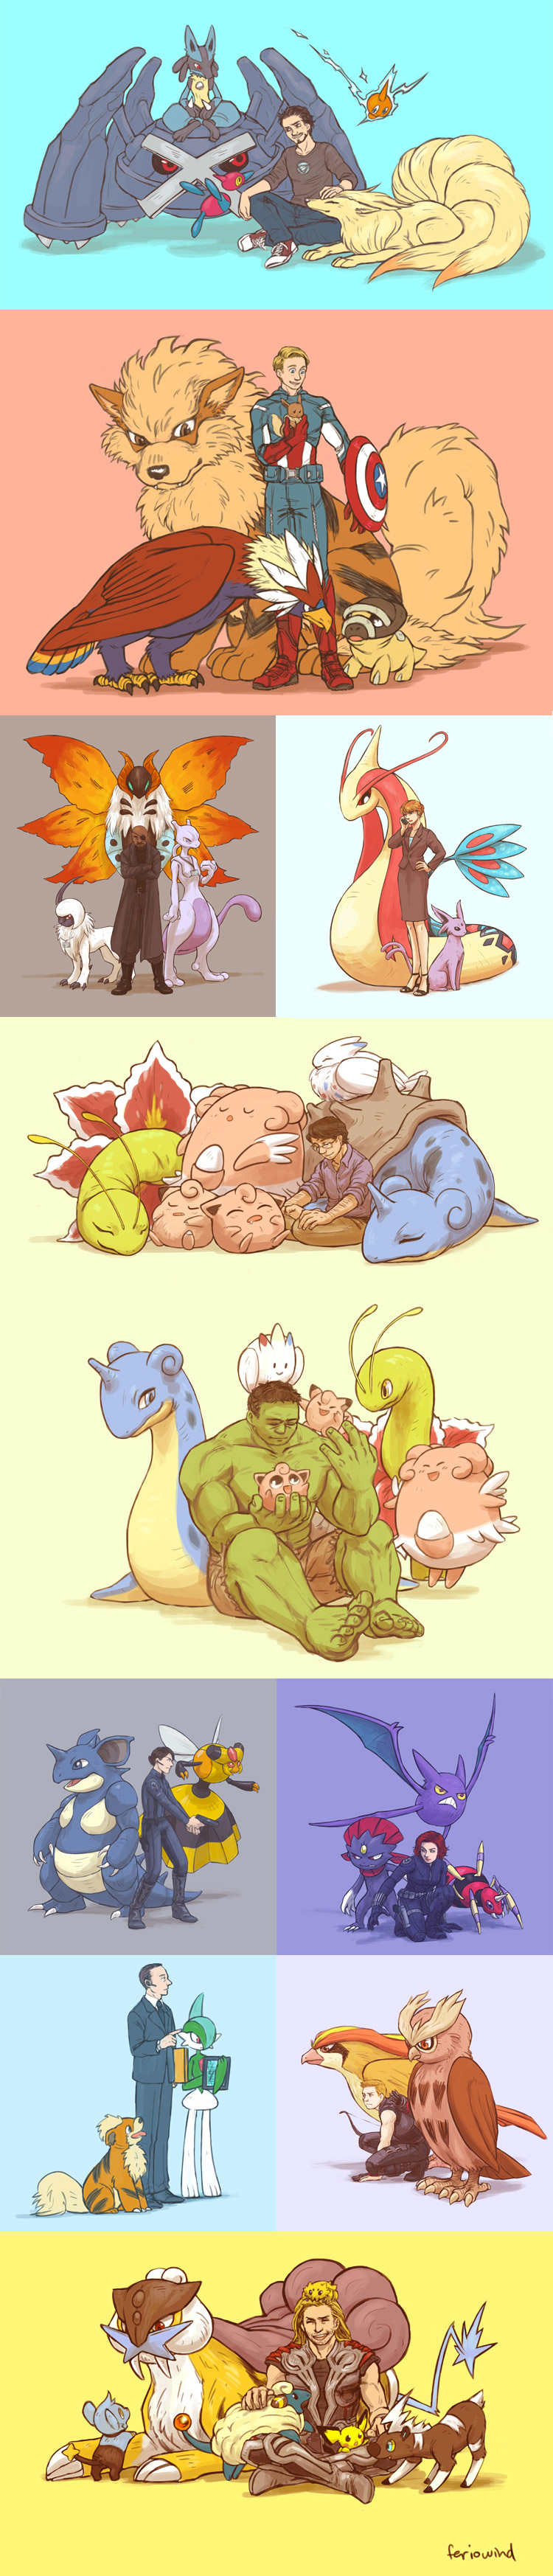 Avengers Pokemon Assemble